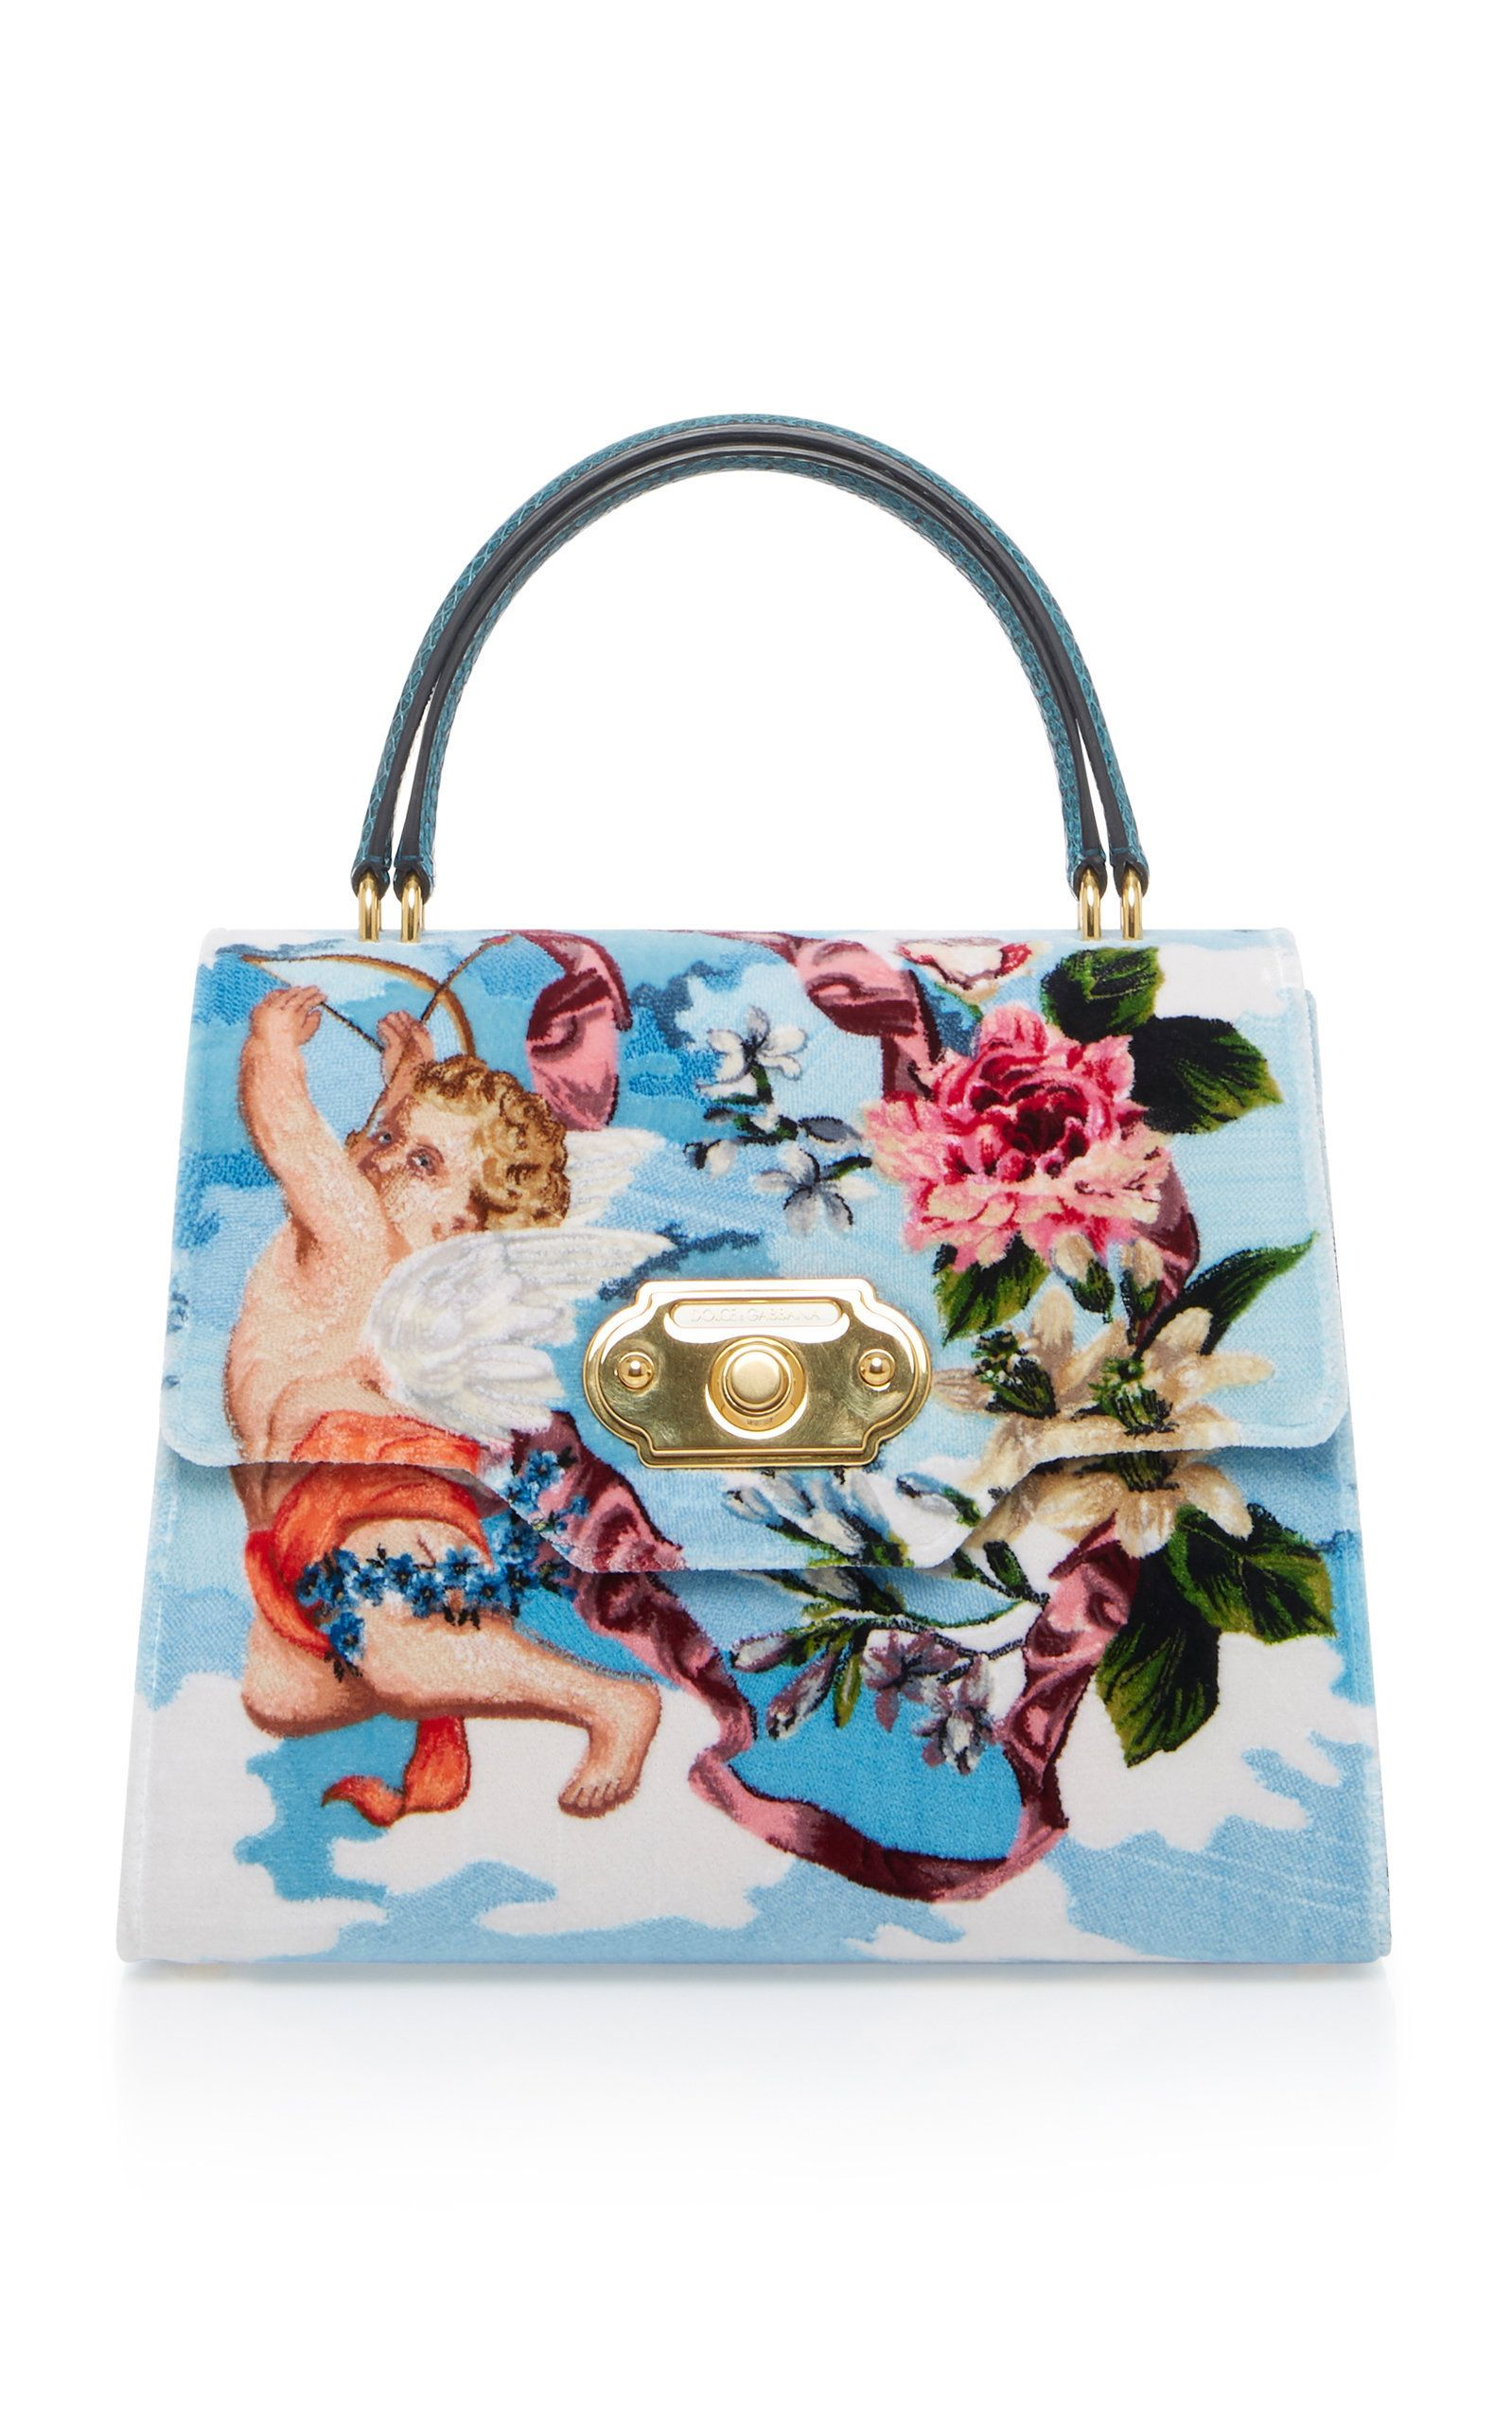 low price meet where to buy Dolce & Gabbana Welcome Bag In Printed Leather | Designer ...